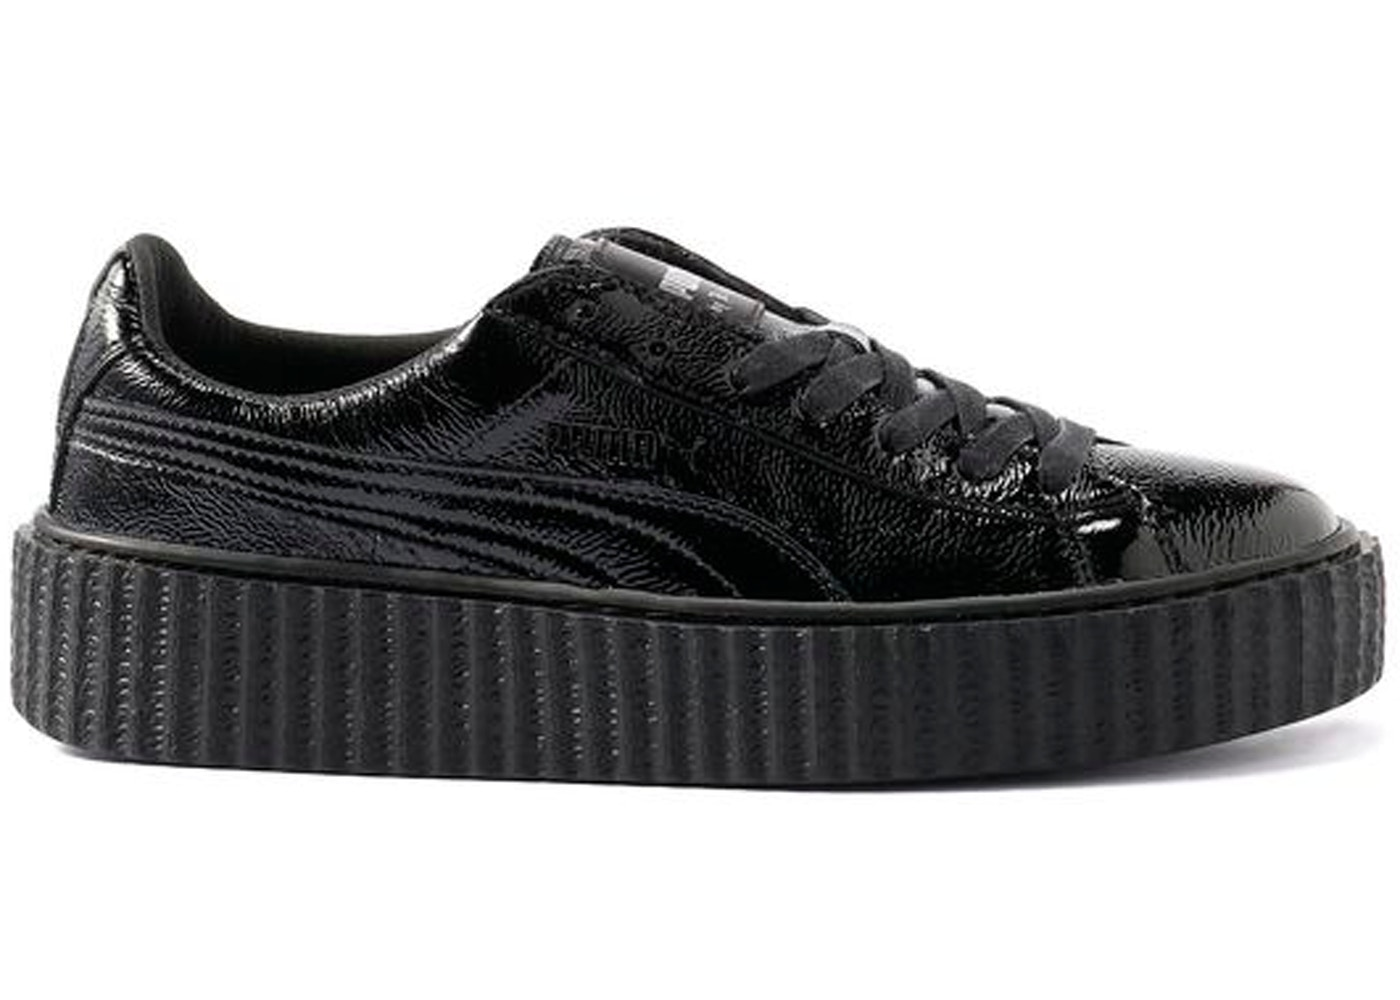 Creeper Cracked Rihanna Black Puma Fenty Leather XiukOTwPZl